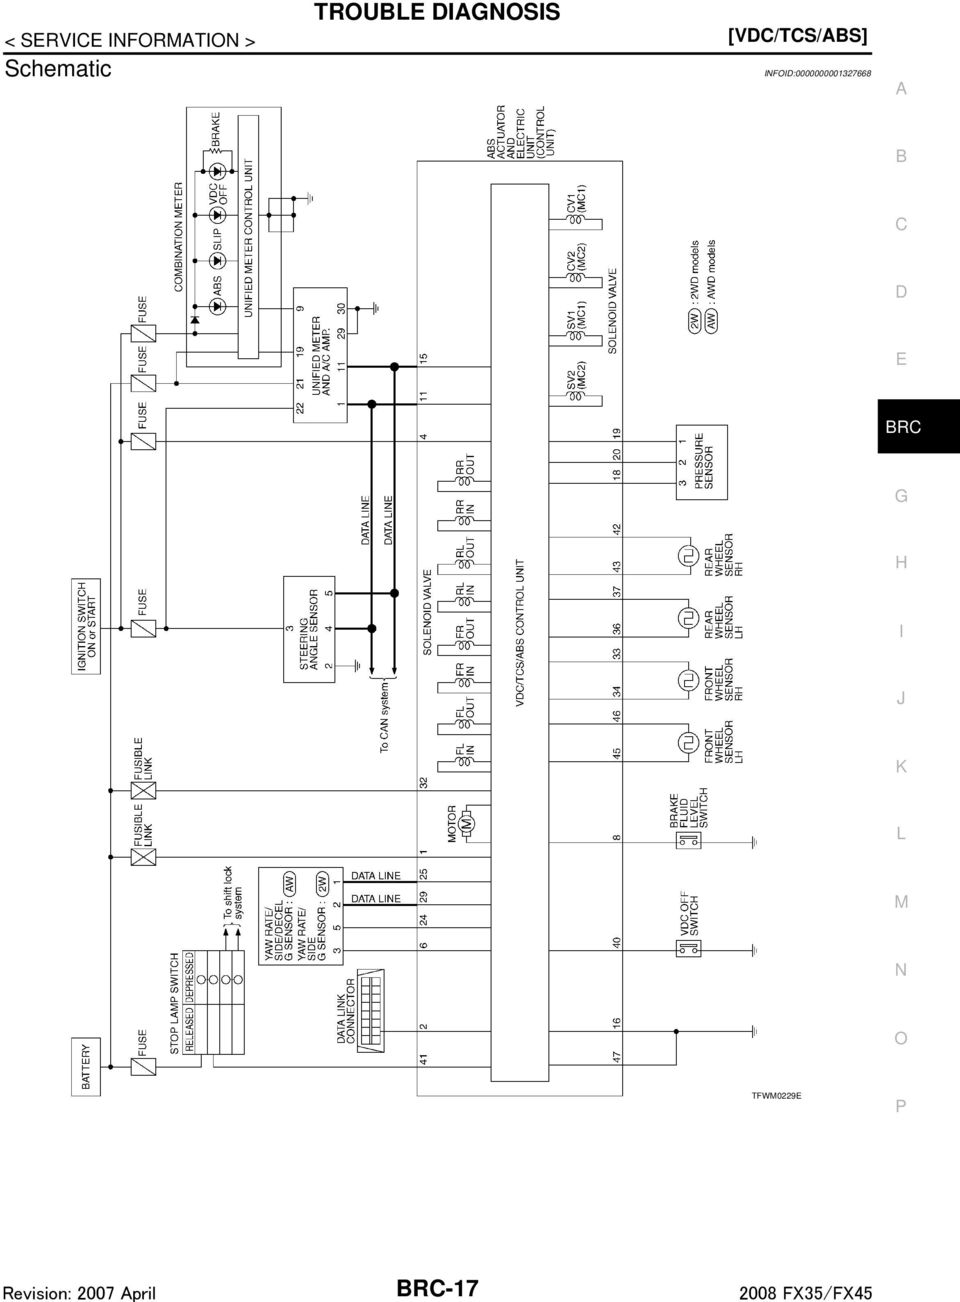 brake control system section brc contents brakes brc 1 vdc tcs abs Alternator Wiring Diagram infoid 0000000001327668 a